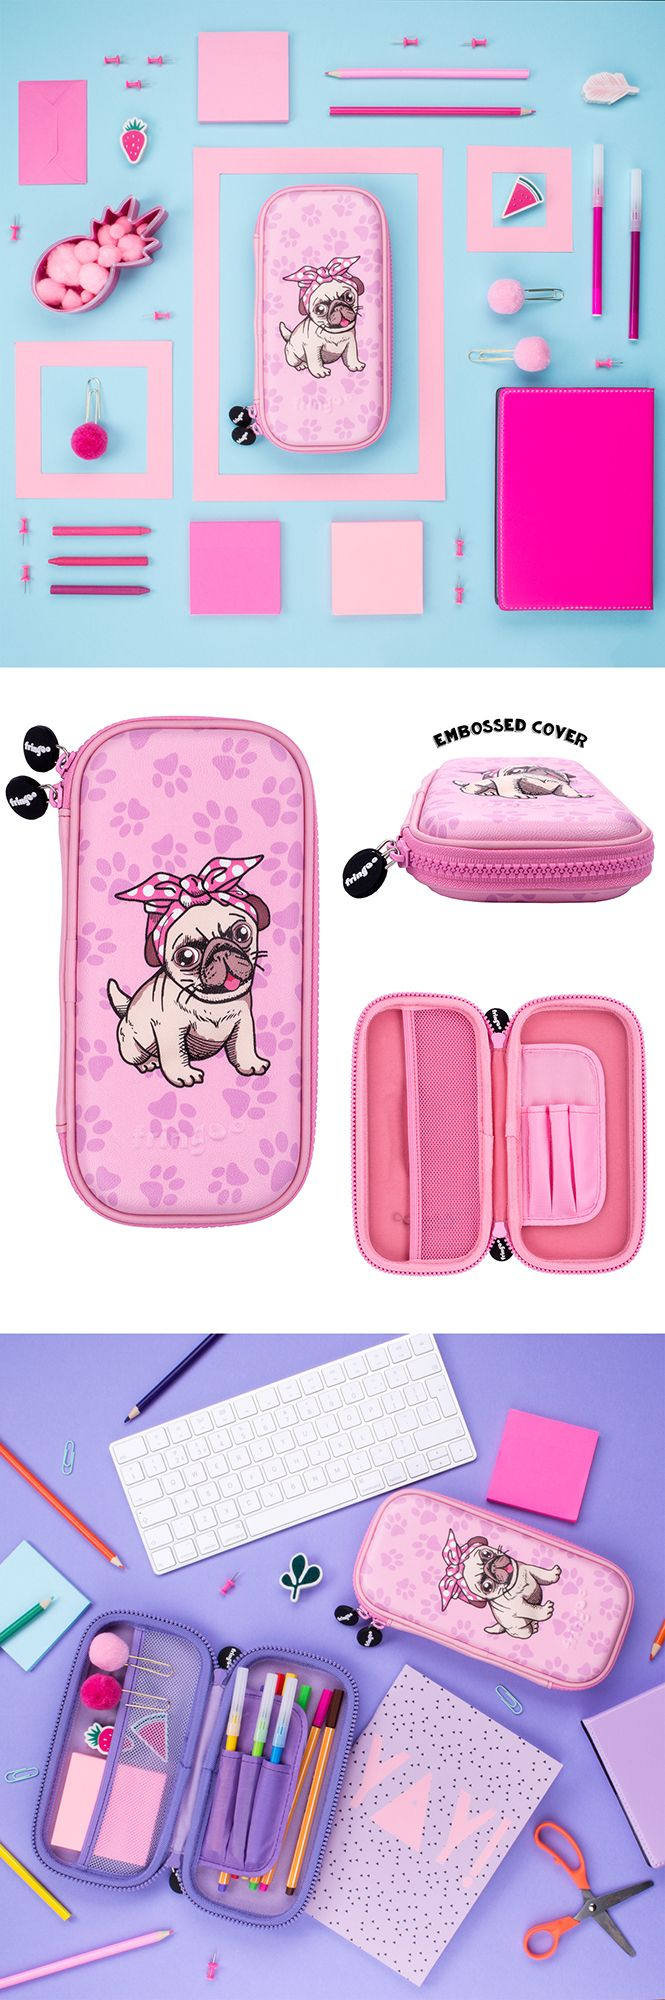 Pink pug pencil case for kids. Adorable children's stationery organiser. Unique, 3D embossed shell school accessory for girls that love pugs.